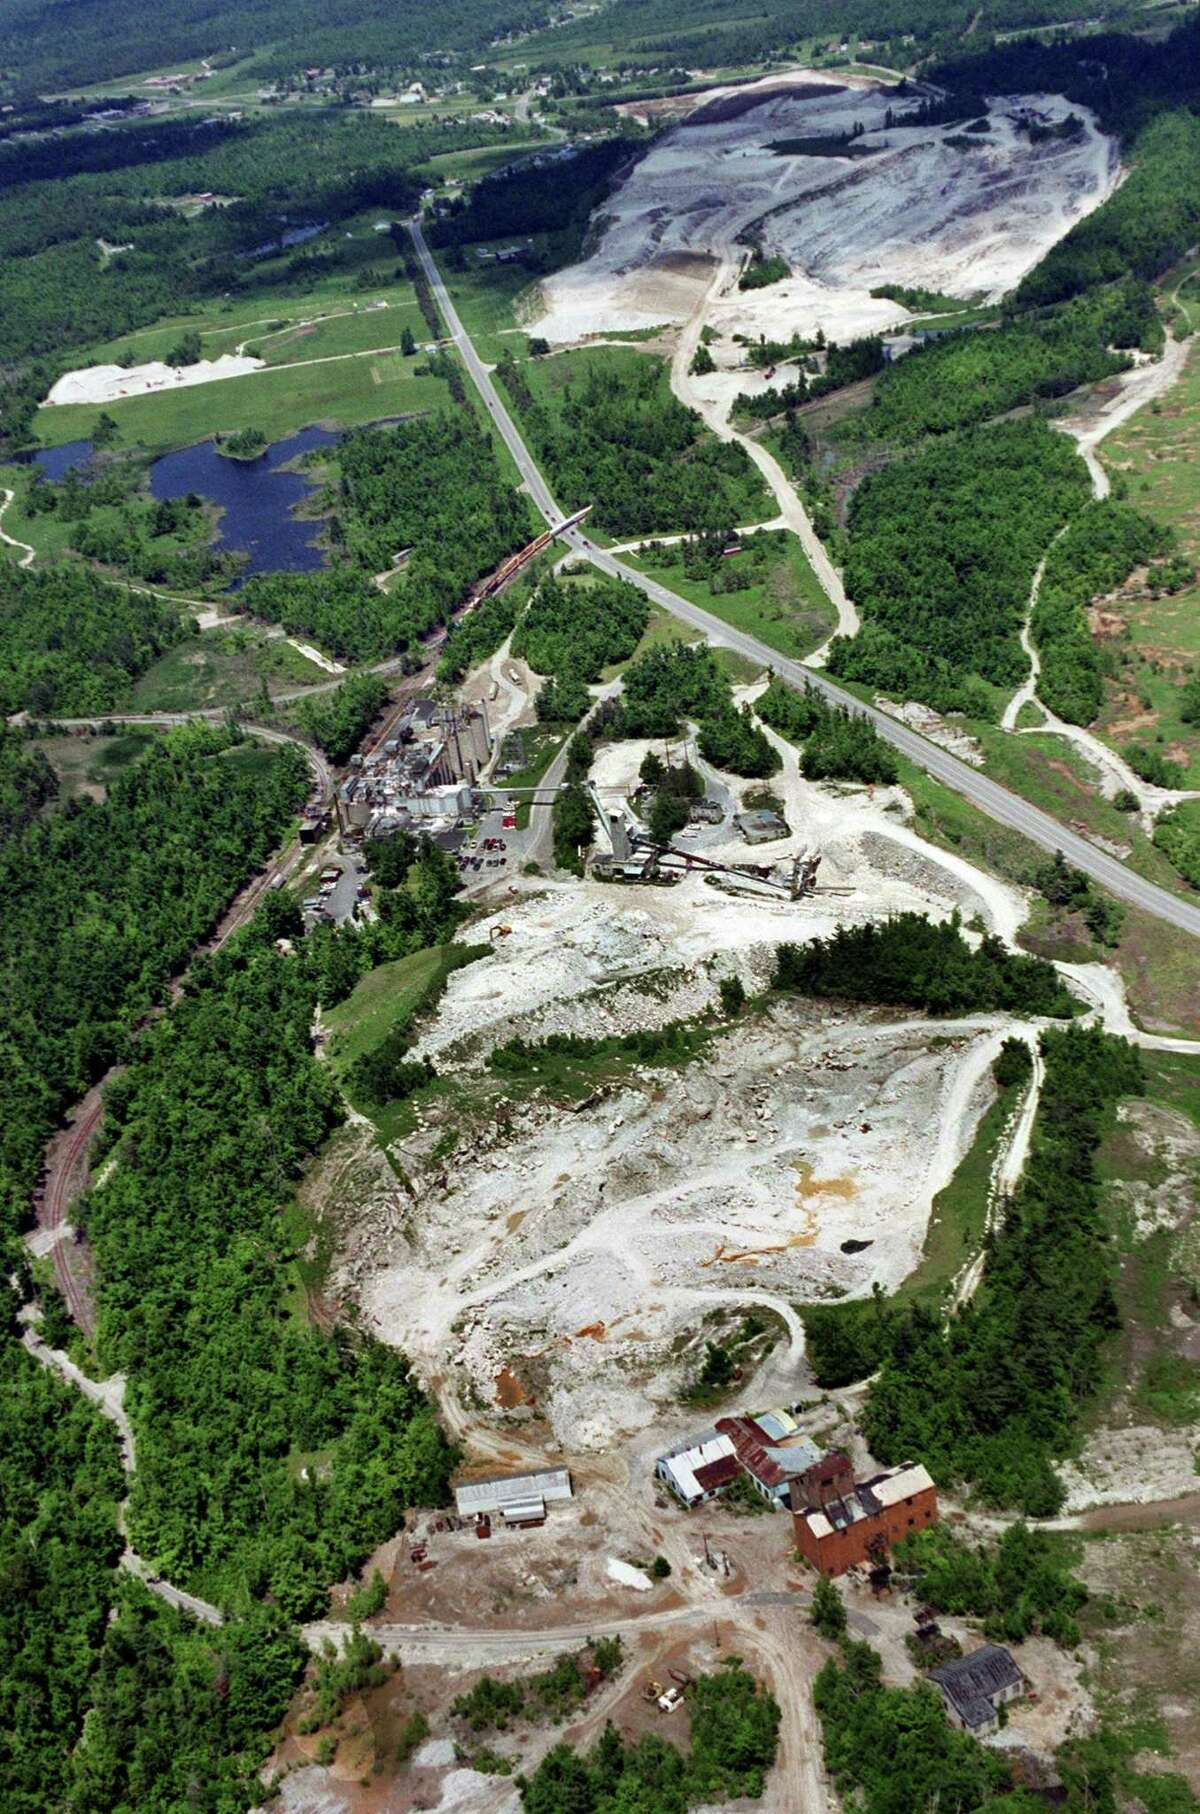 A file photo of the Gouverneur Talc quarry in upstate New York, formerly operated by a subsidiary of R.T. Vanderbilt Co.